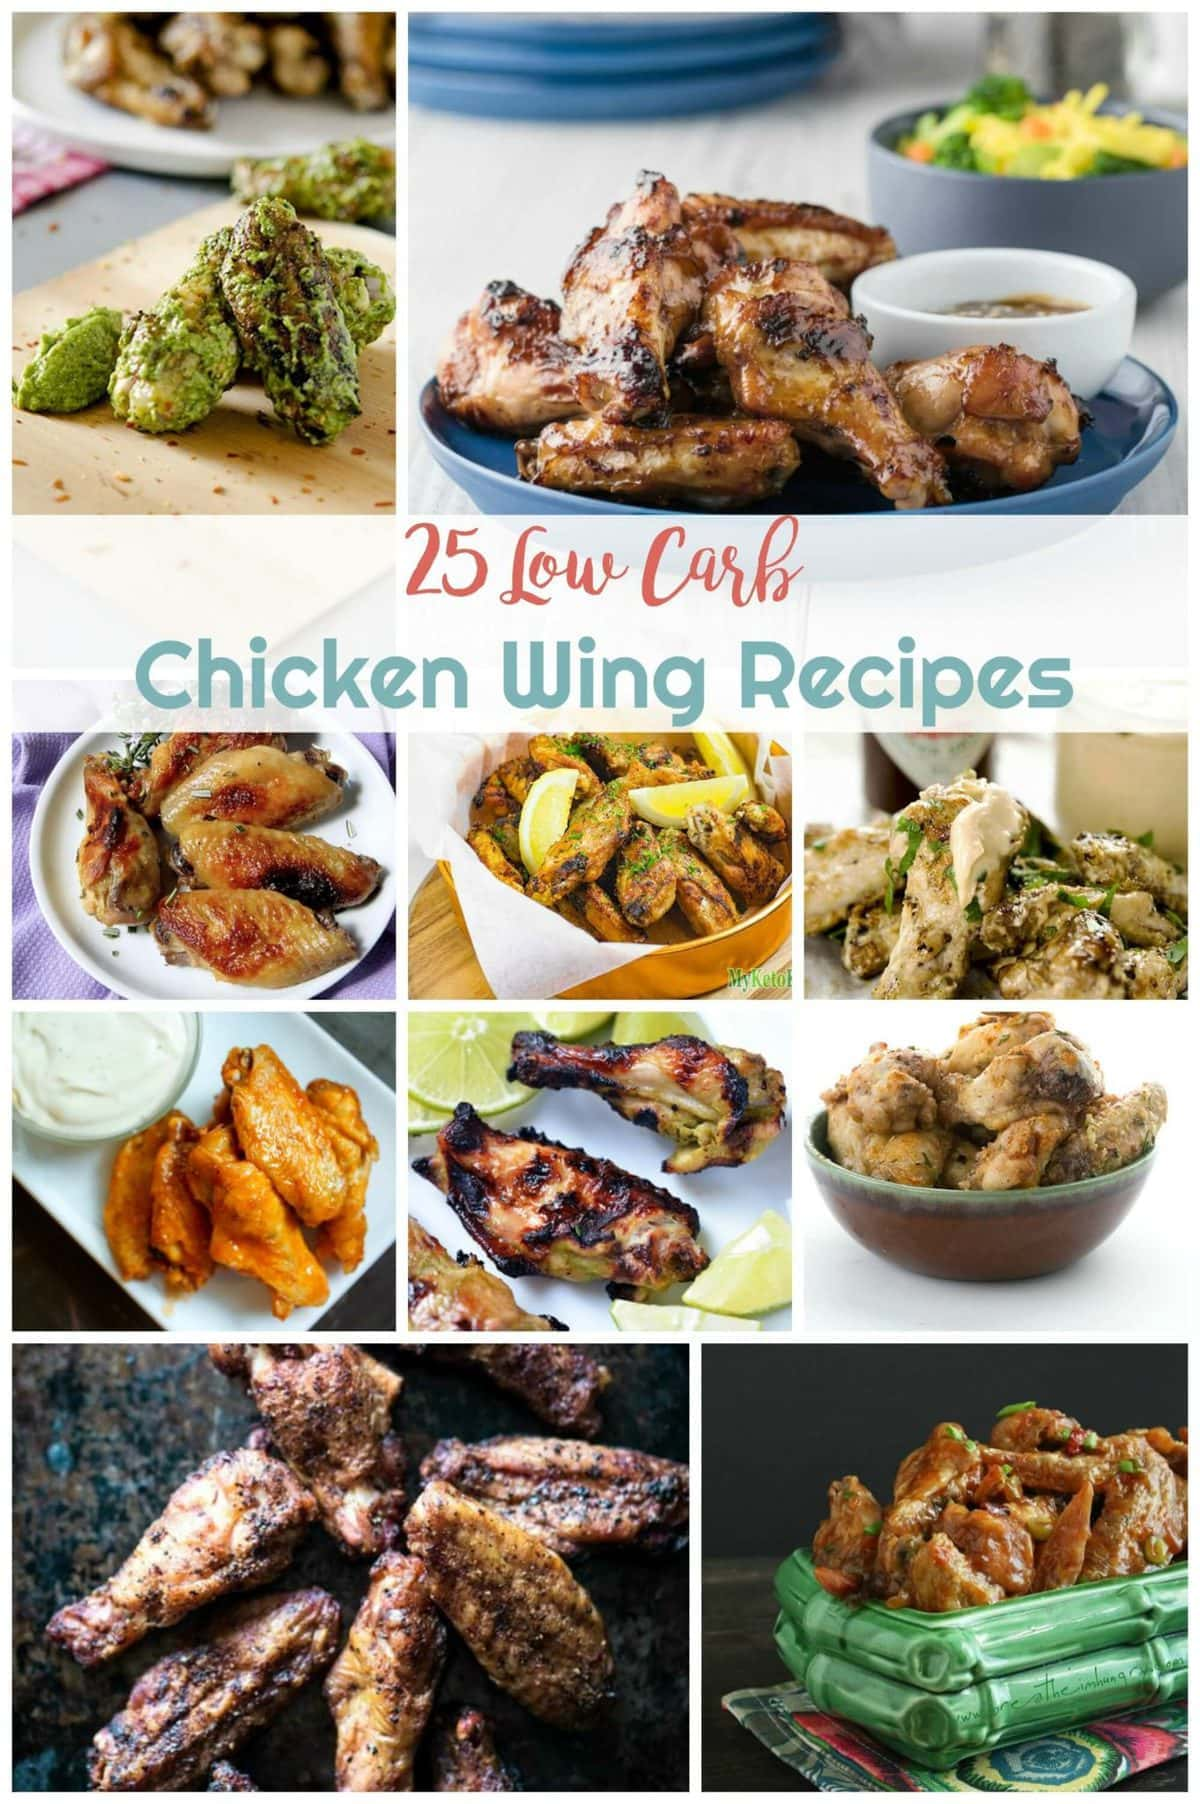 25 Low Carb Chicken Wing Recipes Peace Love And Low Carb